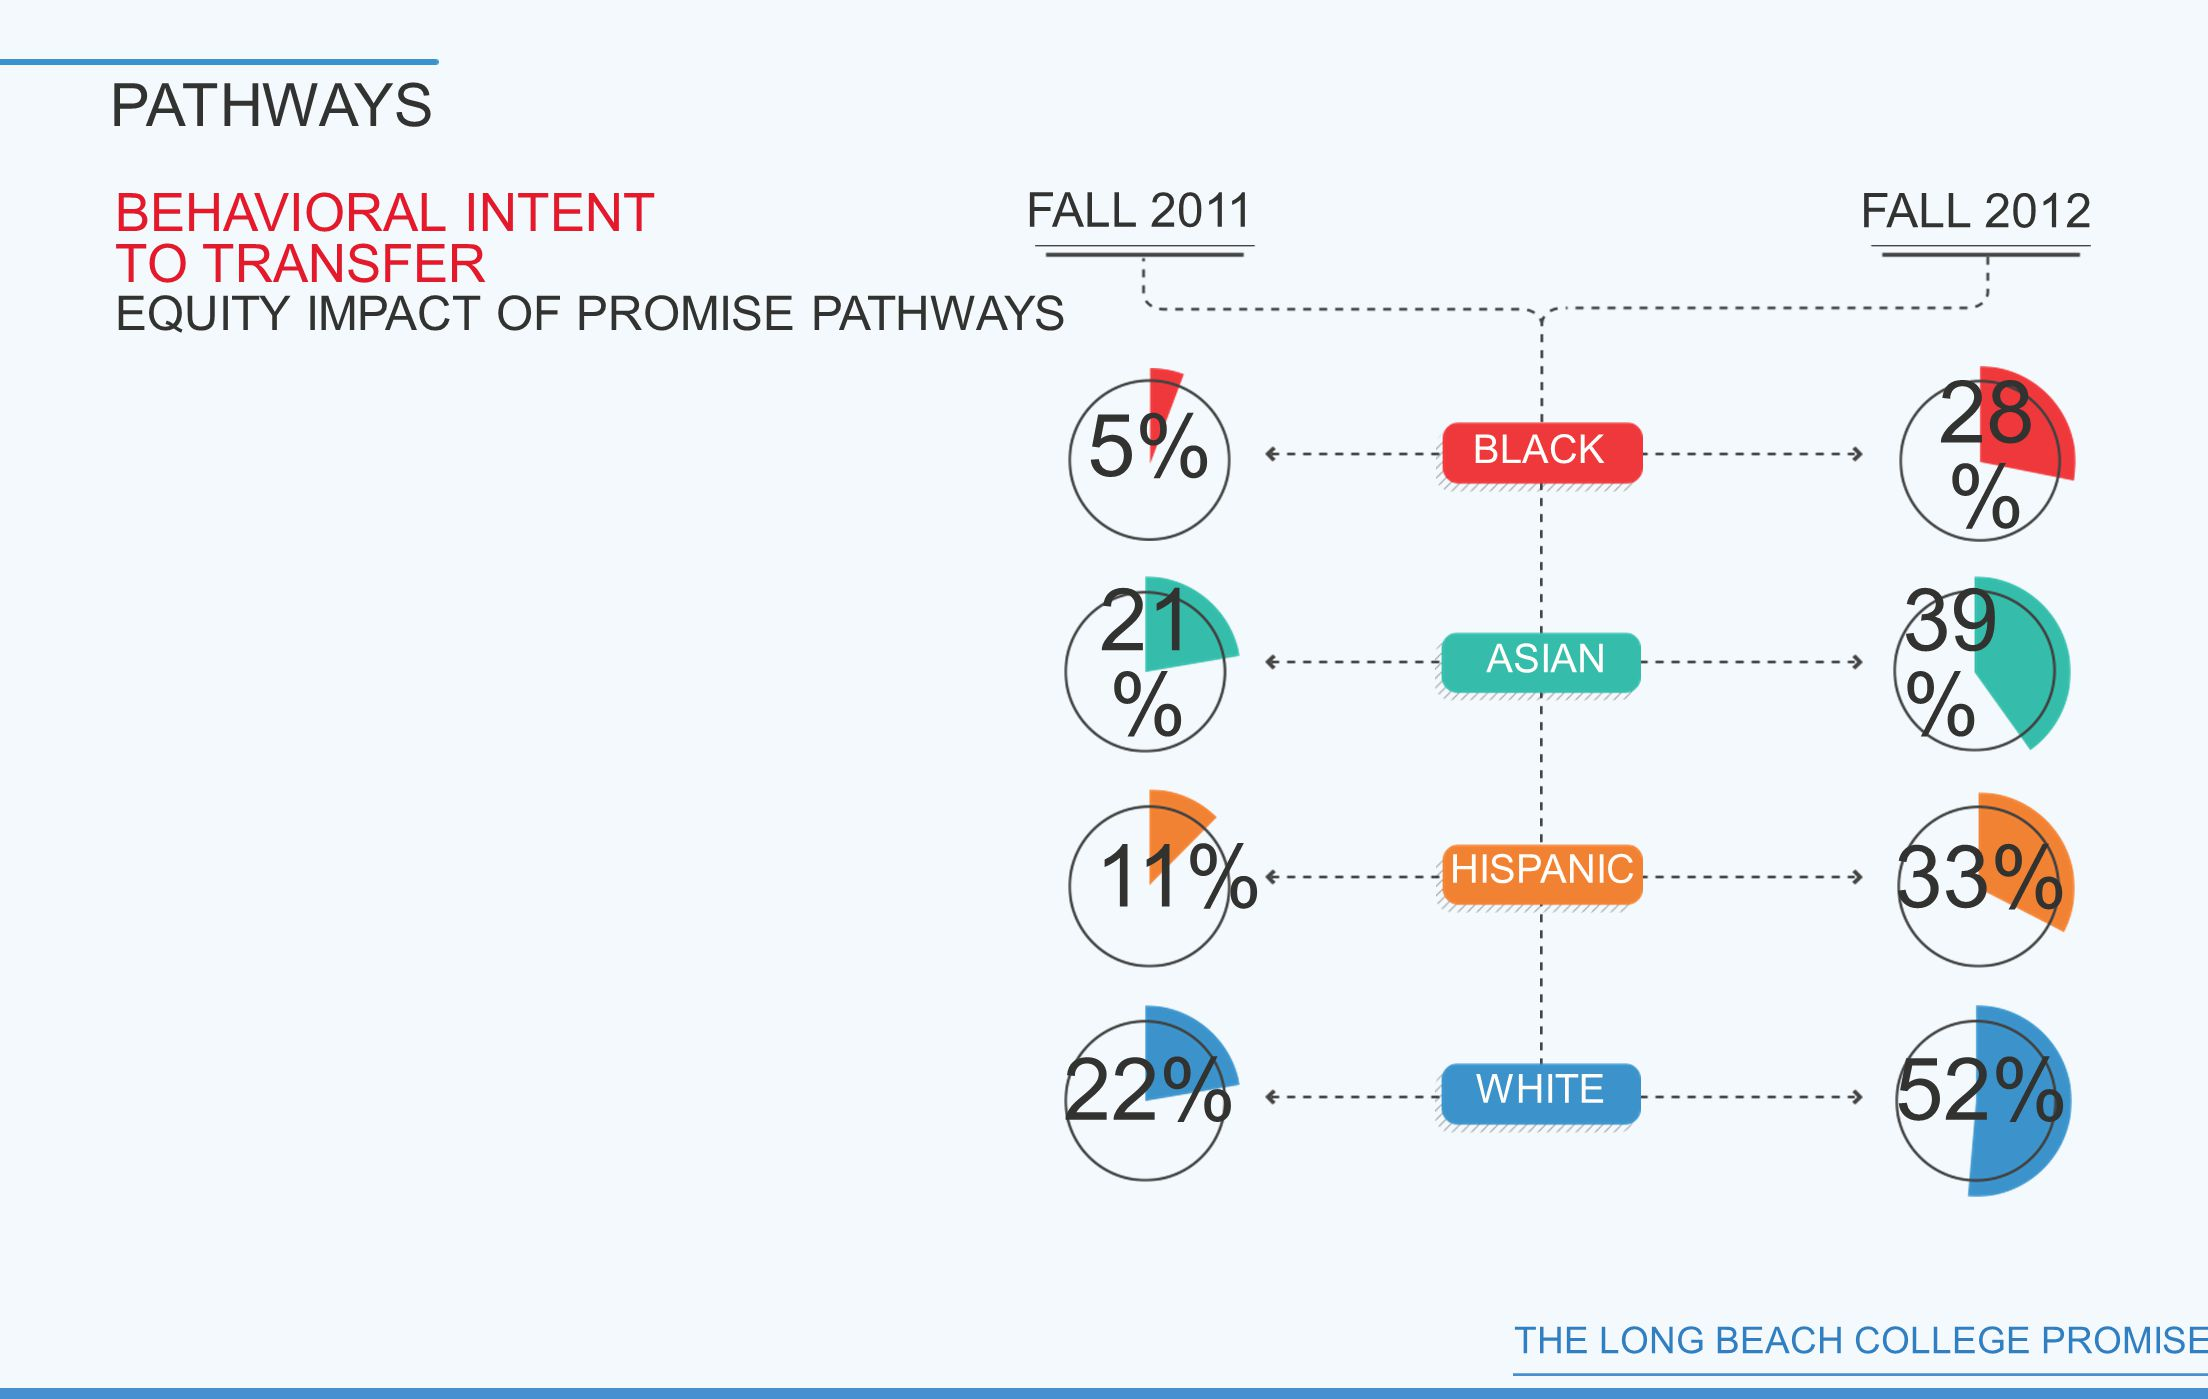 THE LONG BEACH COLLEGE PROMISE PATHWAYS BEHAVIORAL INTENT TO TRANSFER EQUITY IMPACT OF PROMISE PATHWAYS 5% 21 % 11% 22%52% 33% 39 % 28 % BLACK WHITE FALL 2012 HISPANIC ASIAN FALL 2011